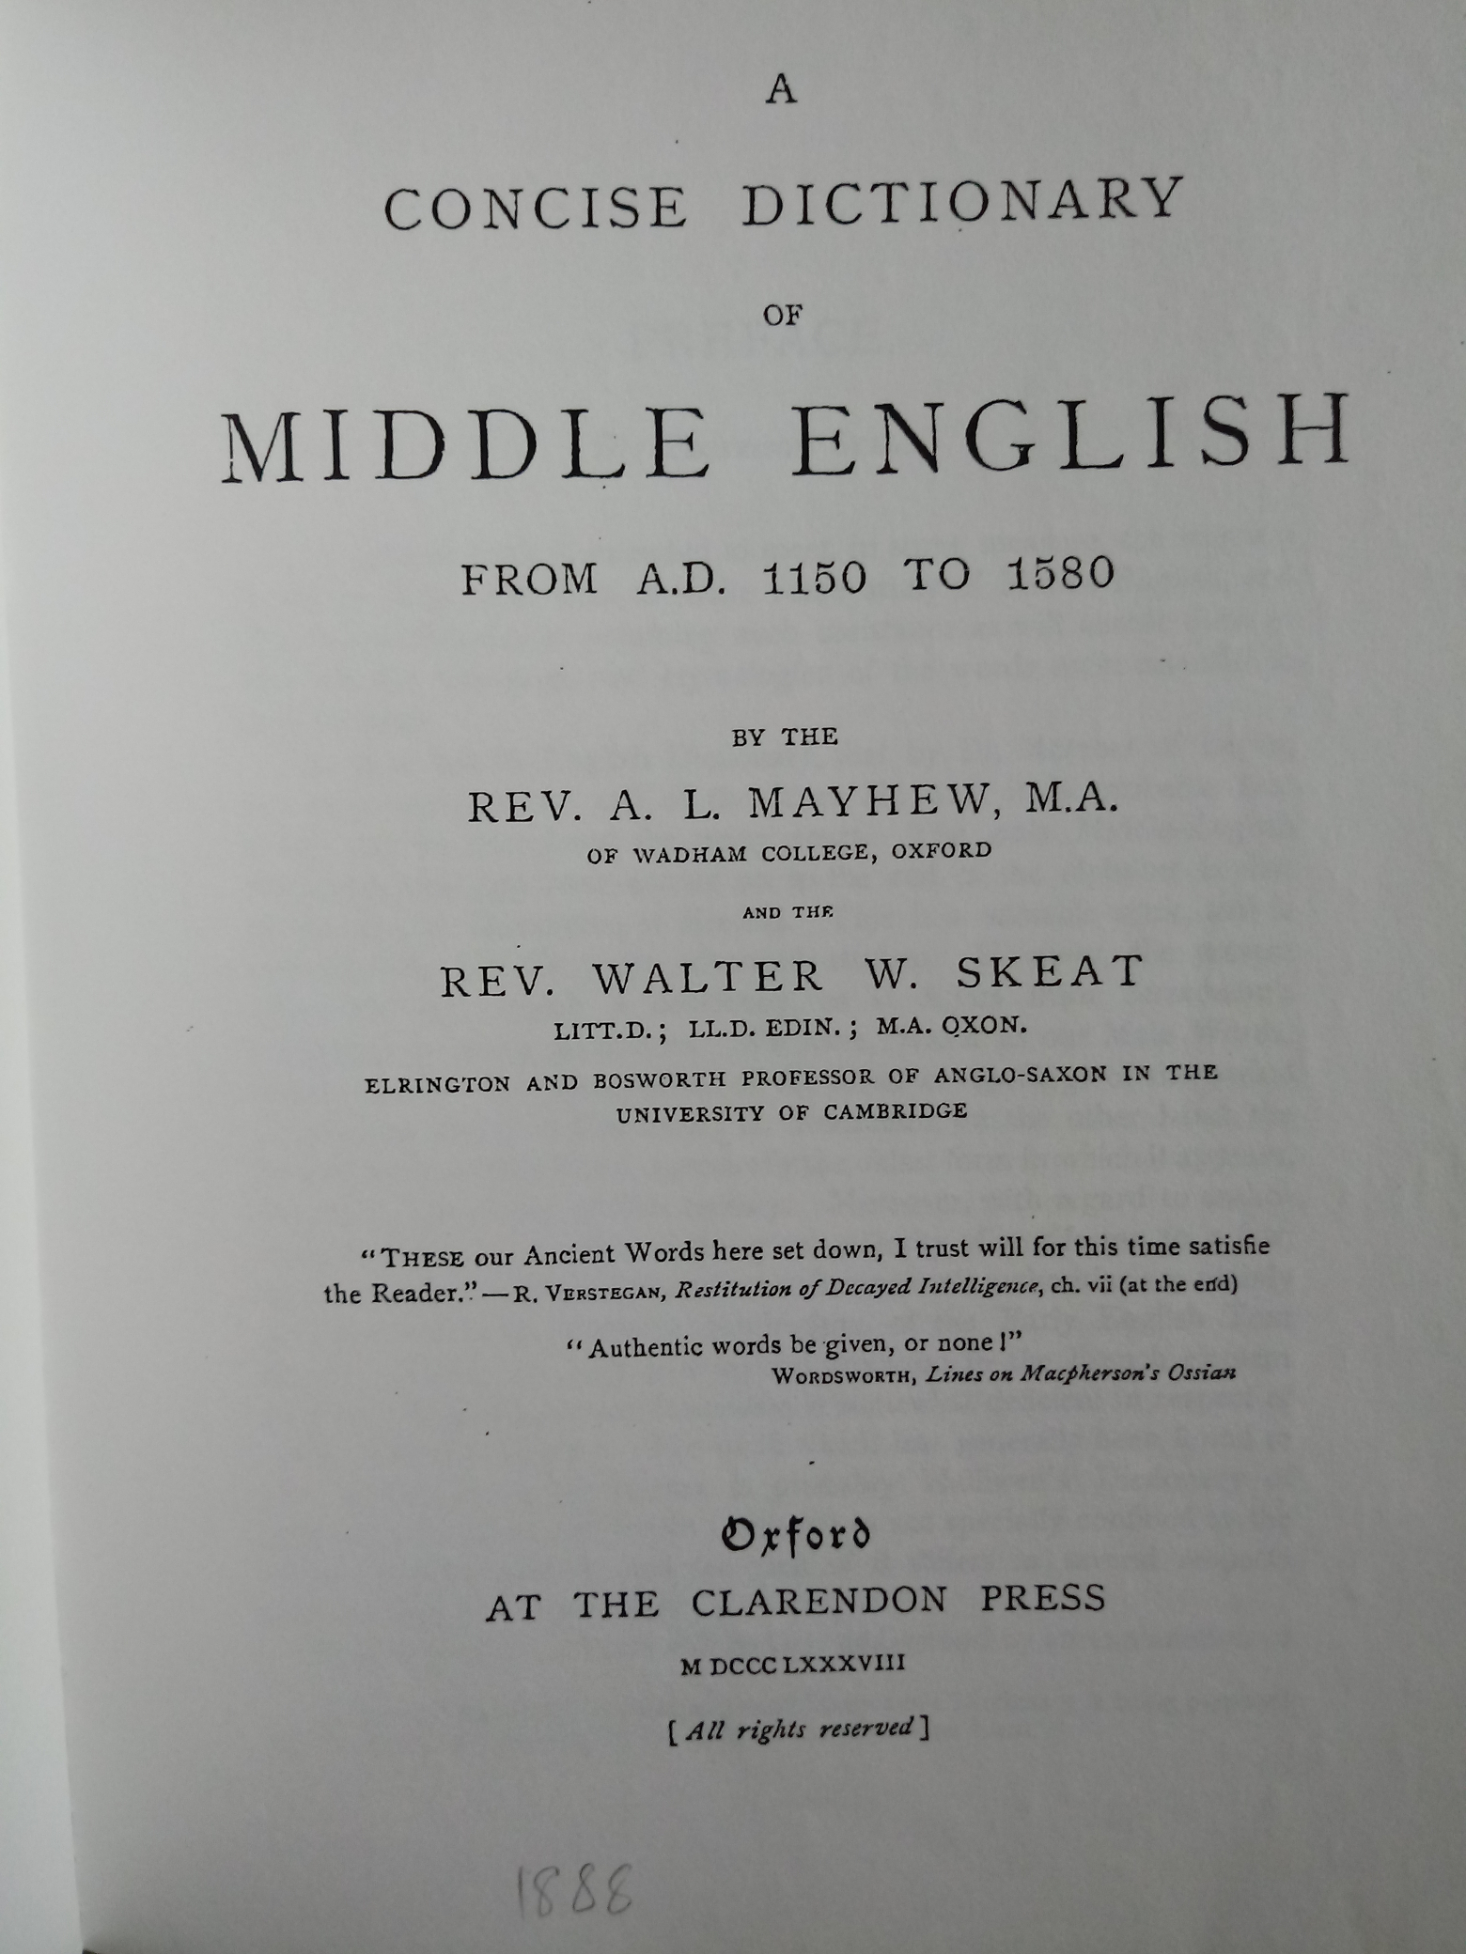 A Concise Dictionary Of Middle English From A. D. 1150 to 1580 by A. L. Mayhew softback book 272 - Image 3 of 3